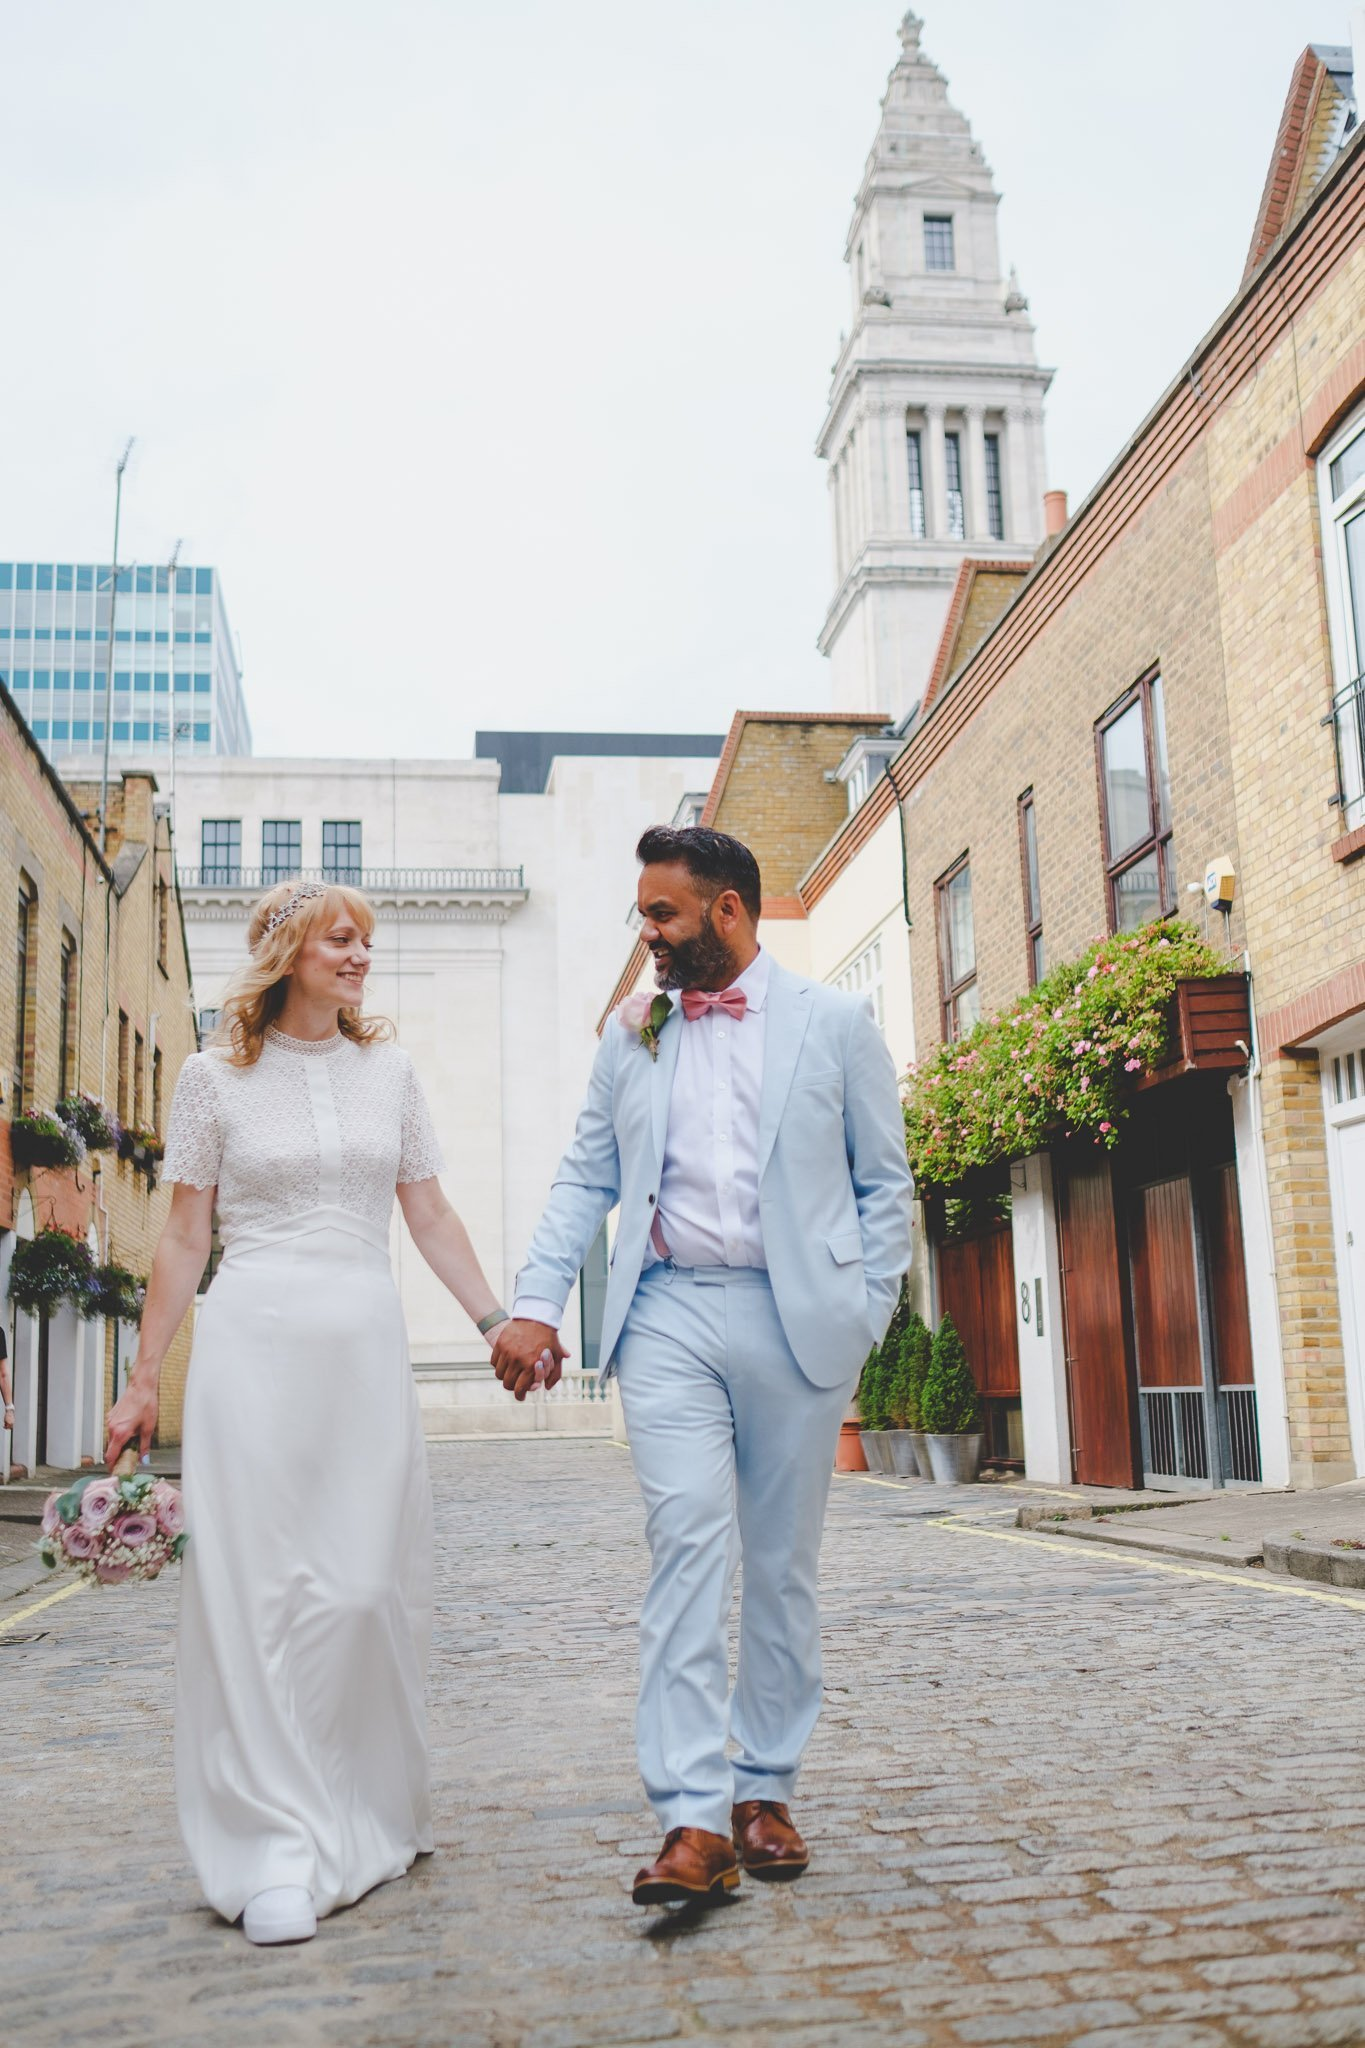 Creative portrait of a bride & groom walking on a cobbled London street. Photography by thatthingyoupluck.